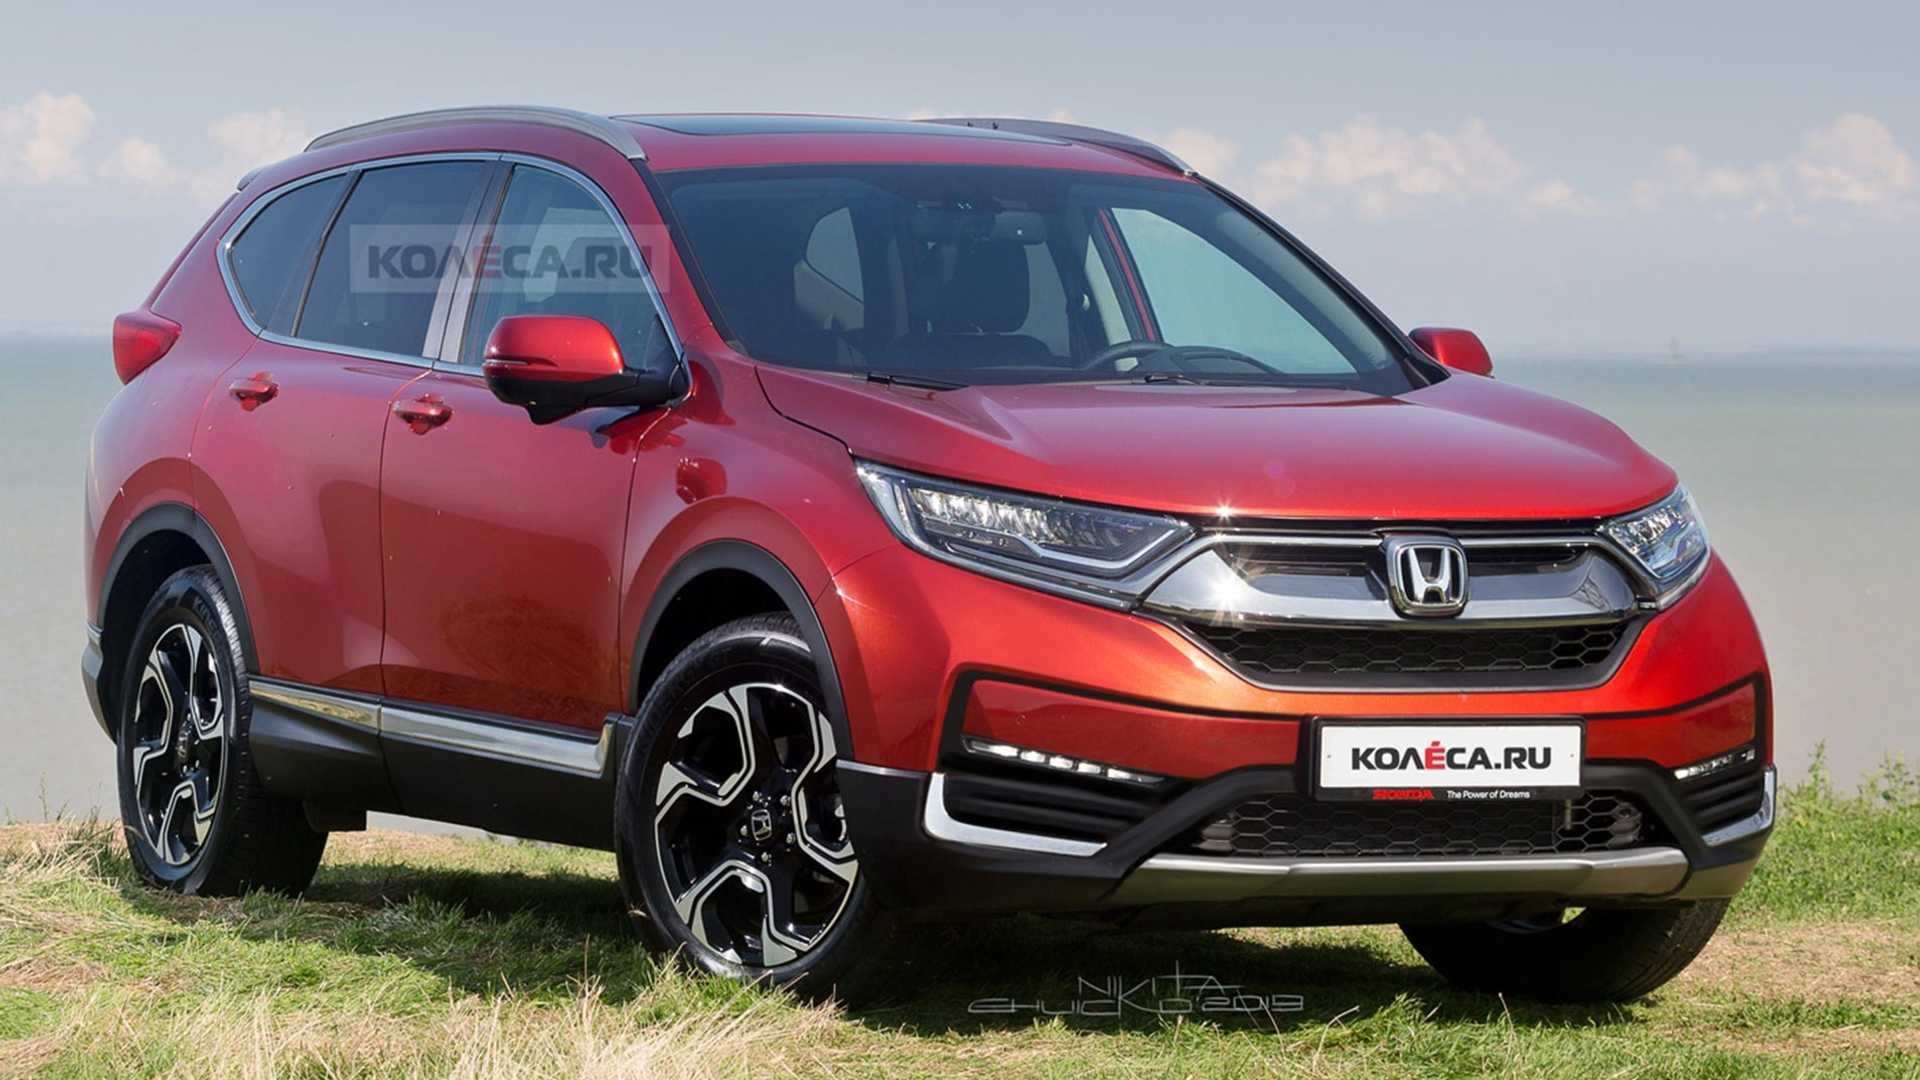 35 Great When Will 2020 Honda Crv Be Released Rumors by When Will 2020 Honda Crv Be Released